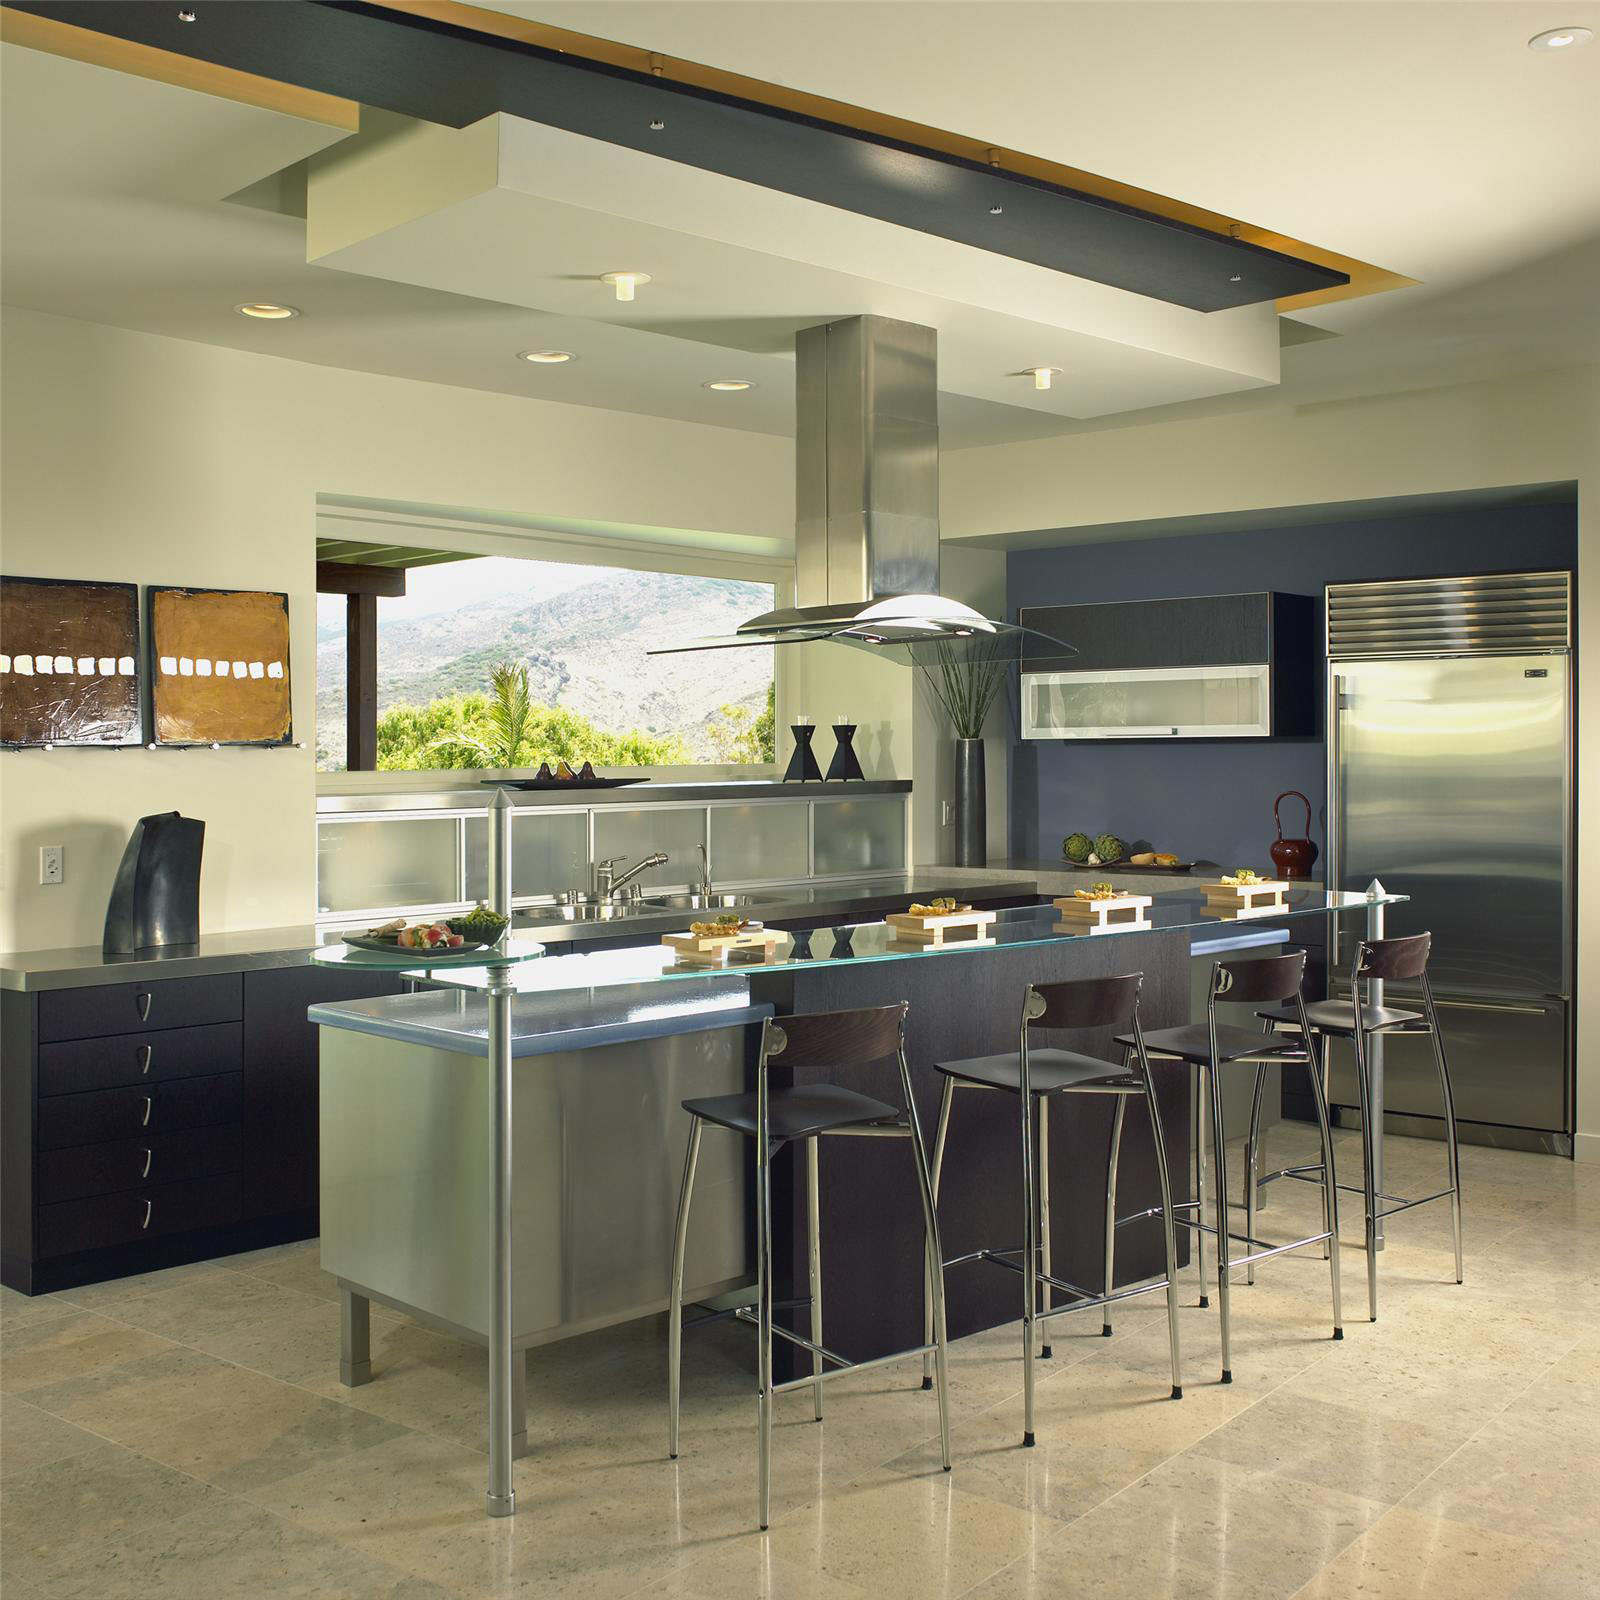 Contemporary Kitchen Designs Open Contemporary Kitchen Design Ideas  Idesignarch  Interior